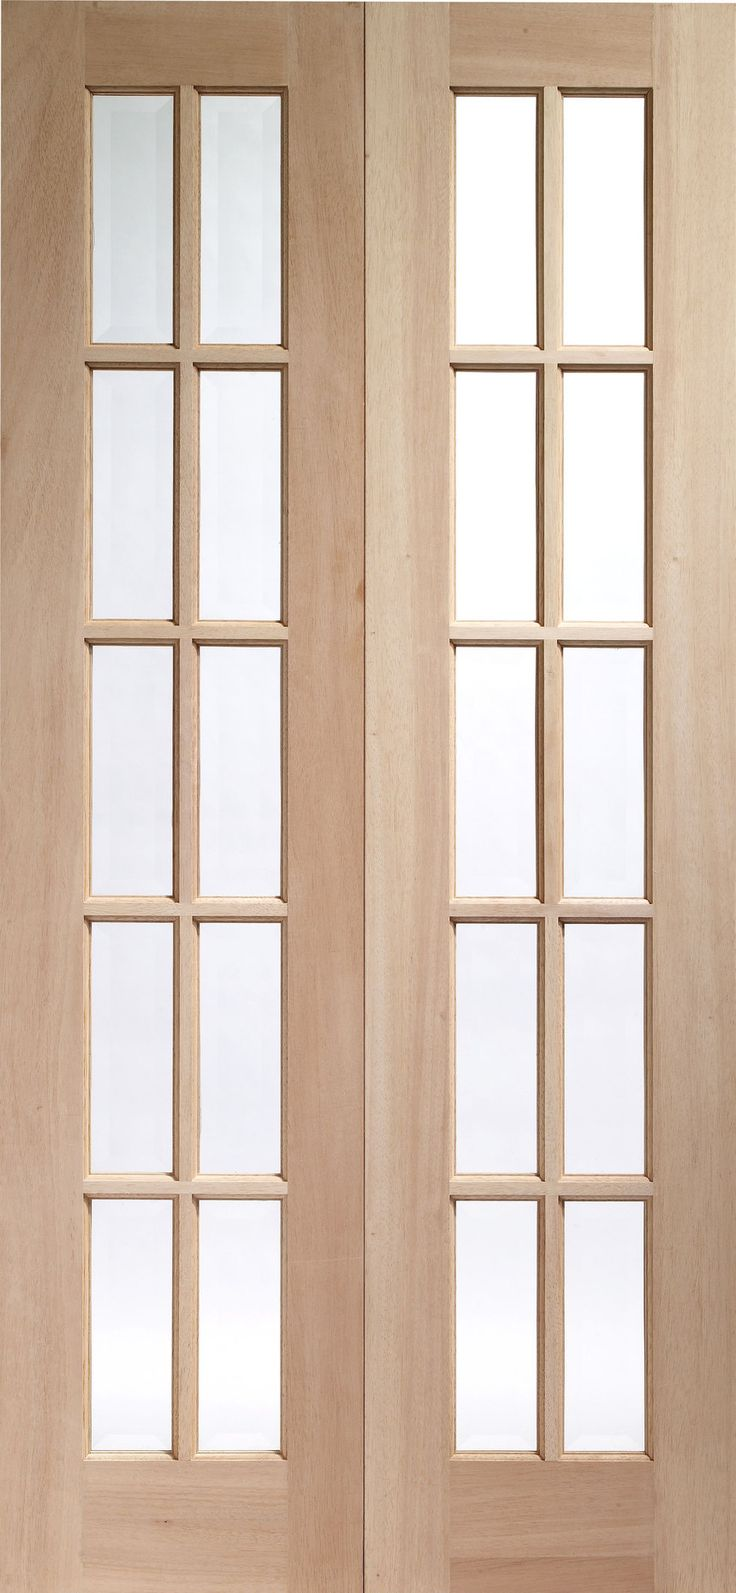 Narrow french door photos french doors hardwood for Narrow french patio doors